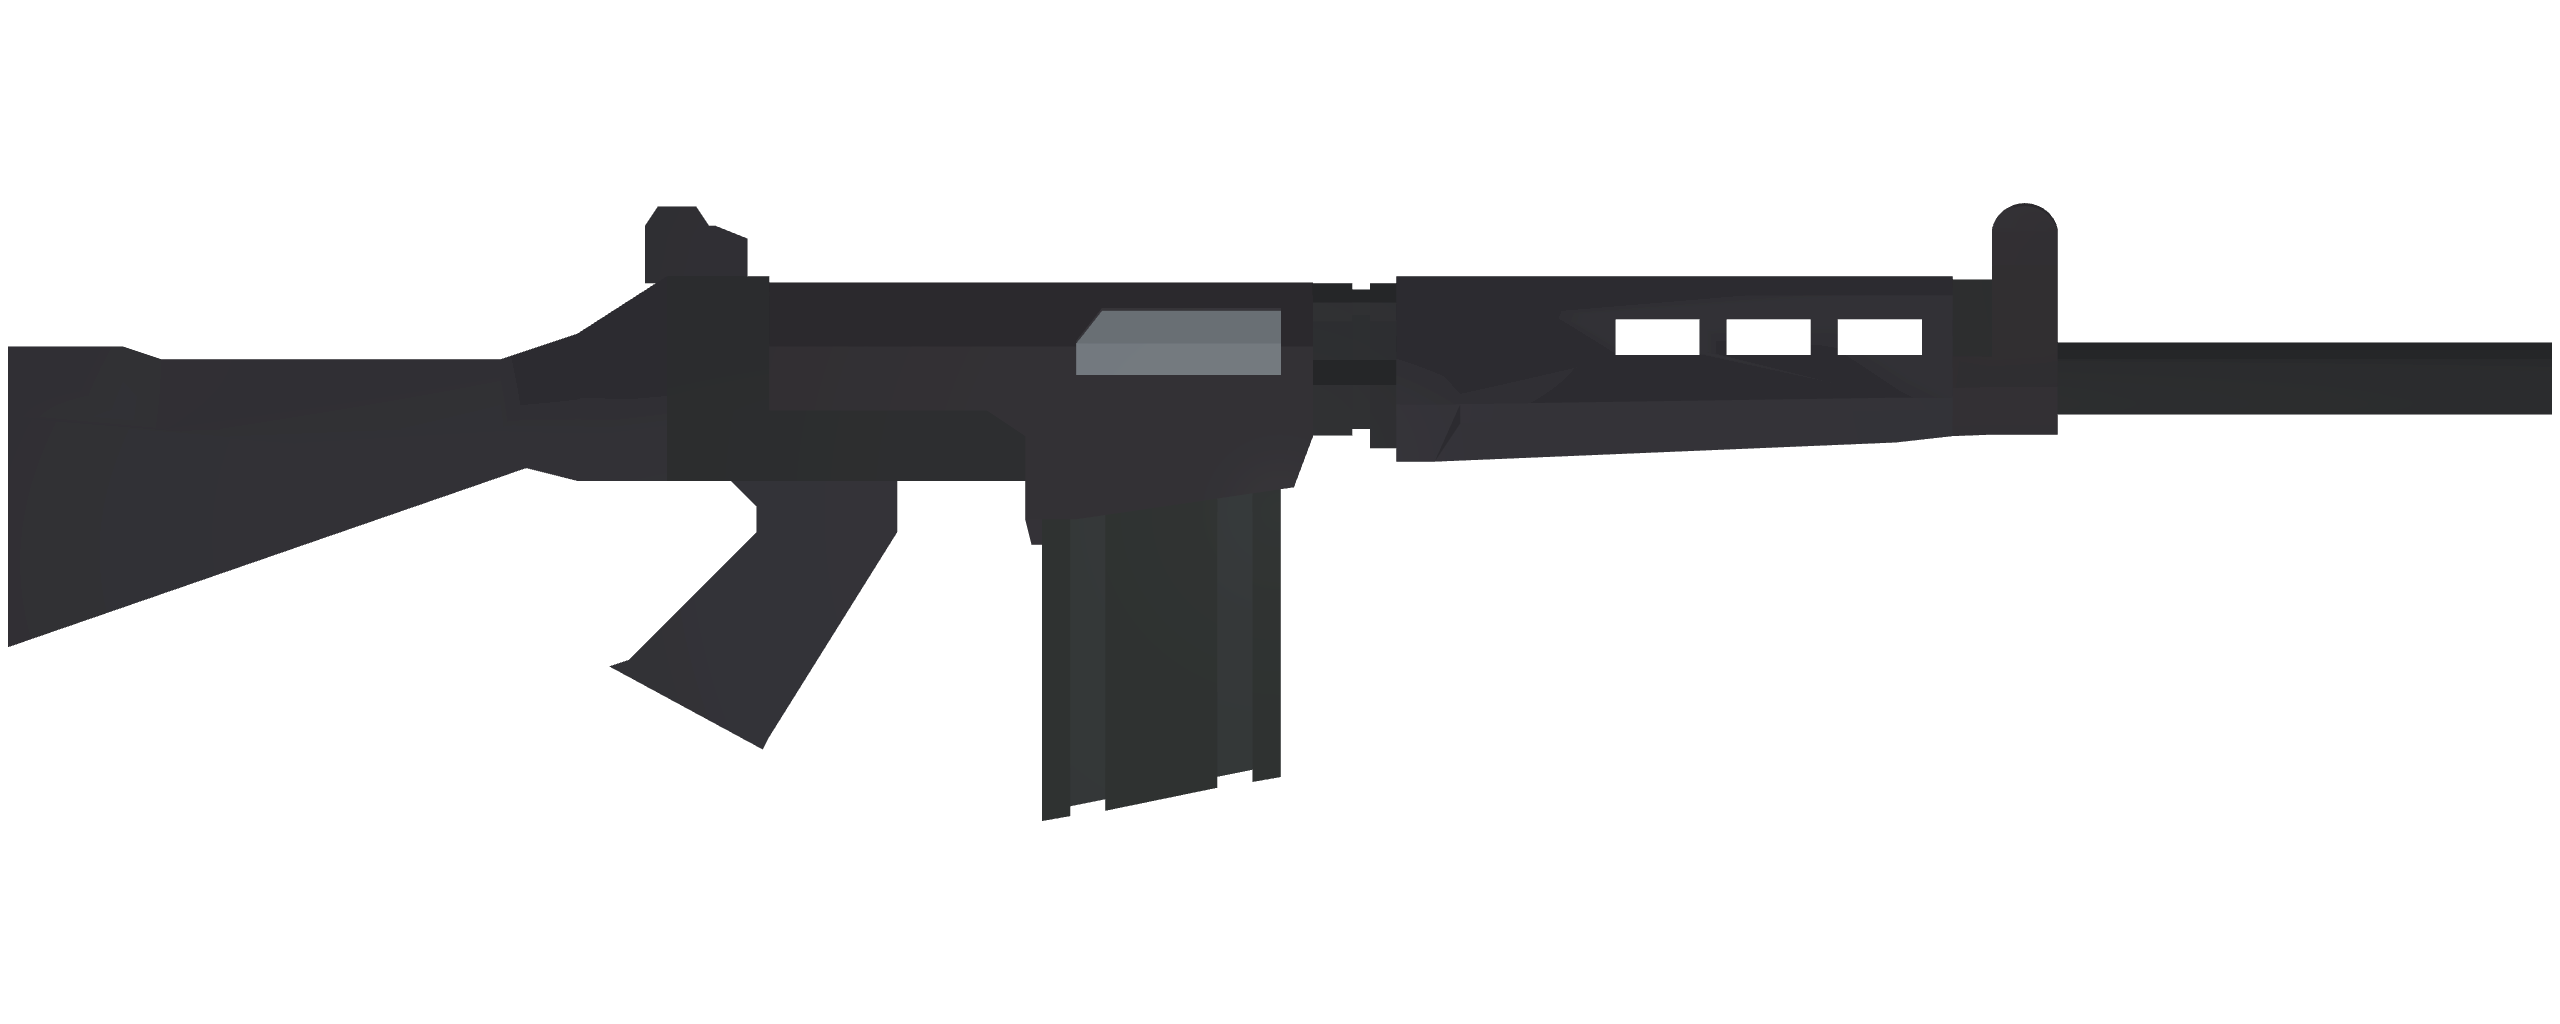 Unturned Uncreated Warfare Mods & All ID List + Attachments - Neutral Weapons - 82888E6